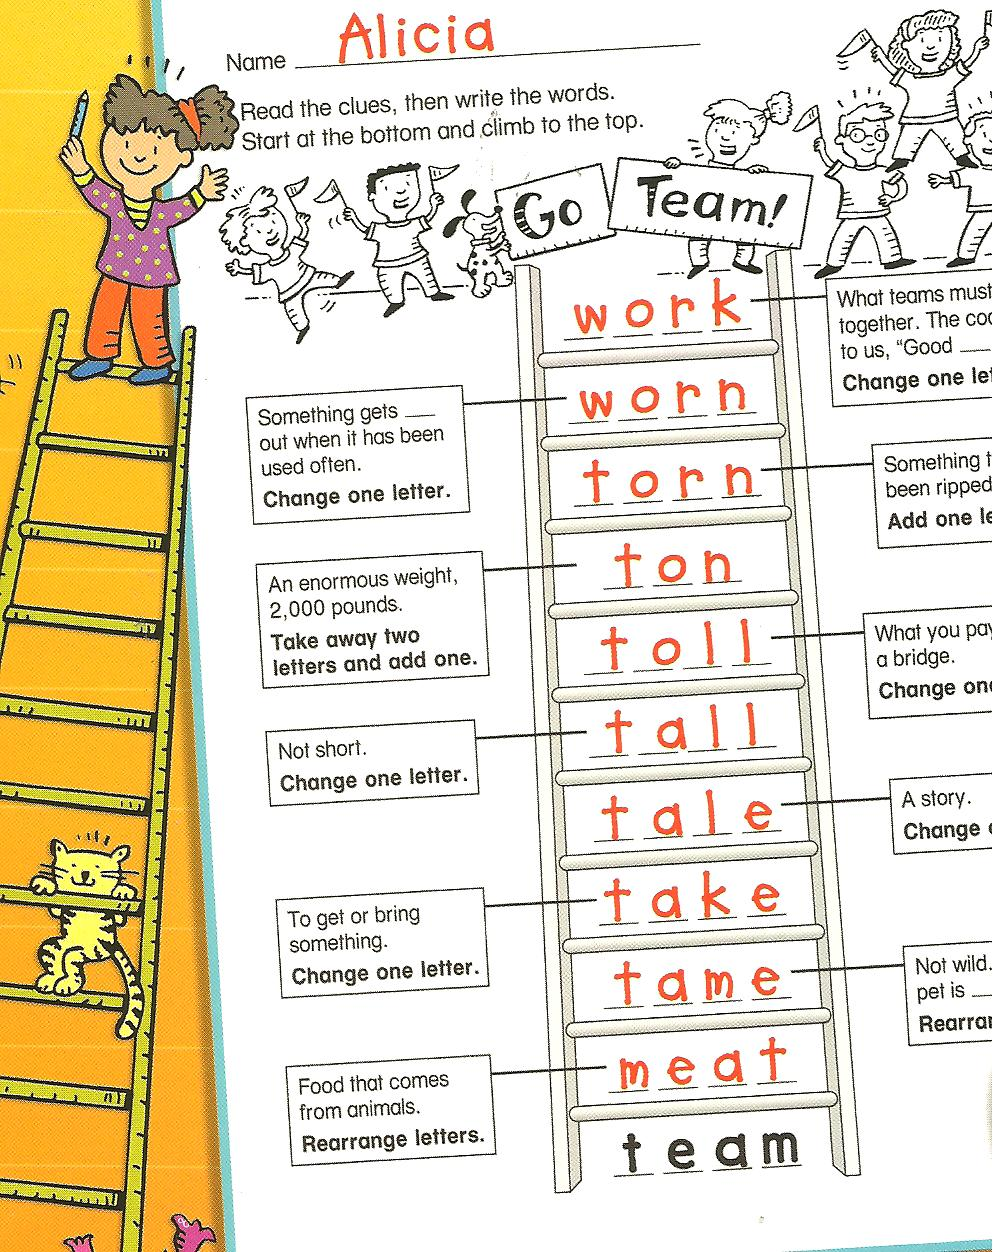 Worksheets Word Ladder Worksheets multisensory monday word ladders ladder learning services llc are great puzzles that engage your students phonemic awareness decoding and encoding skills